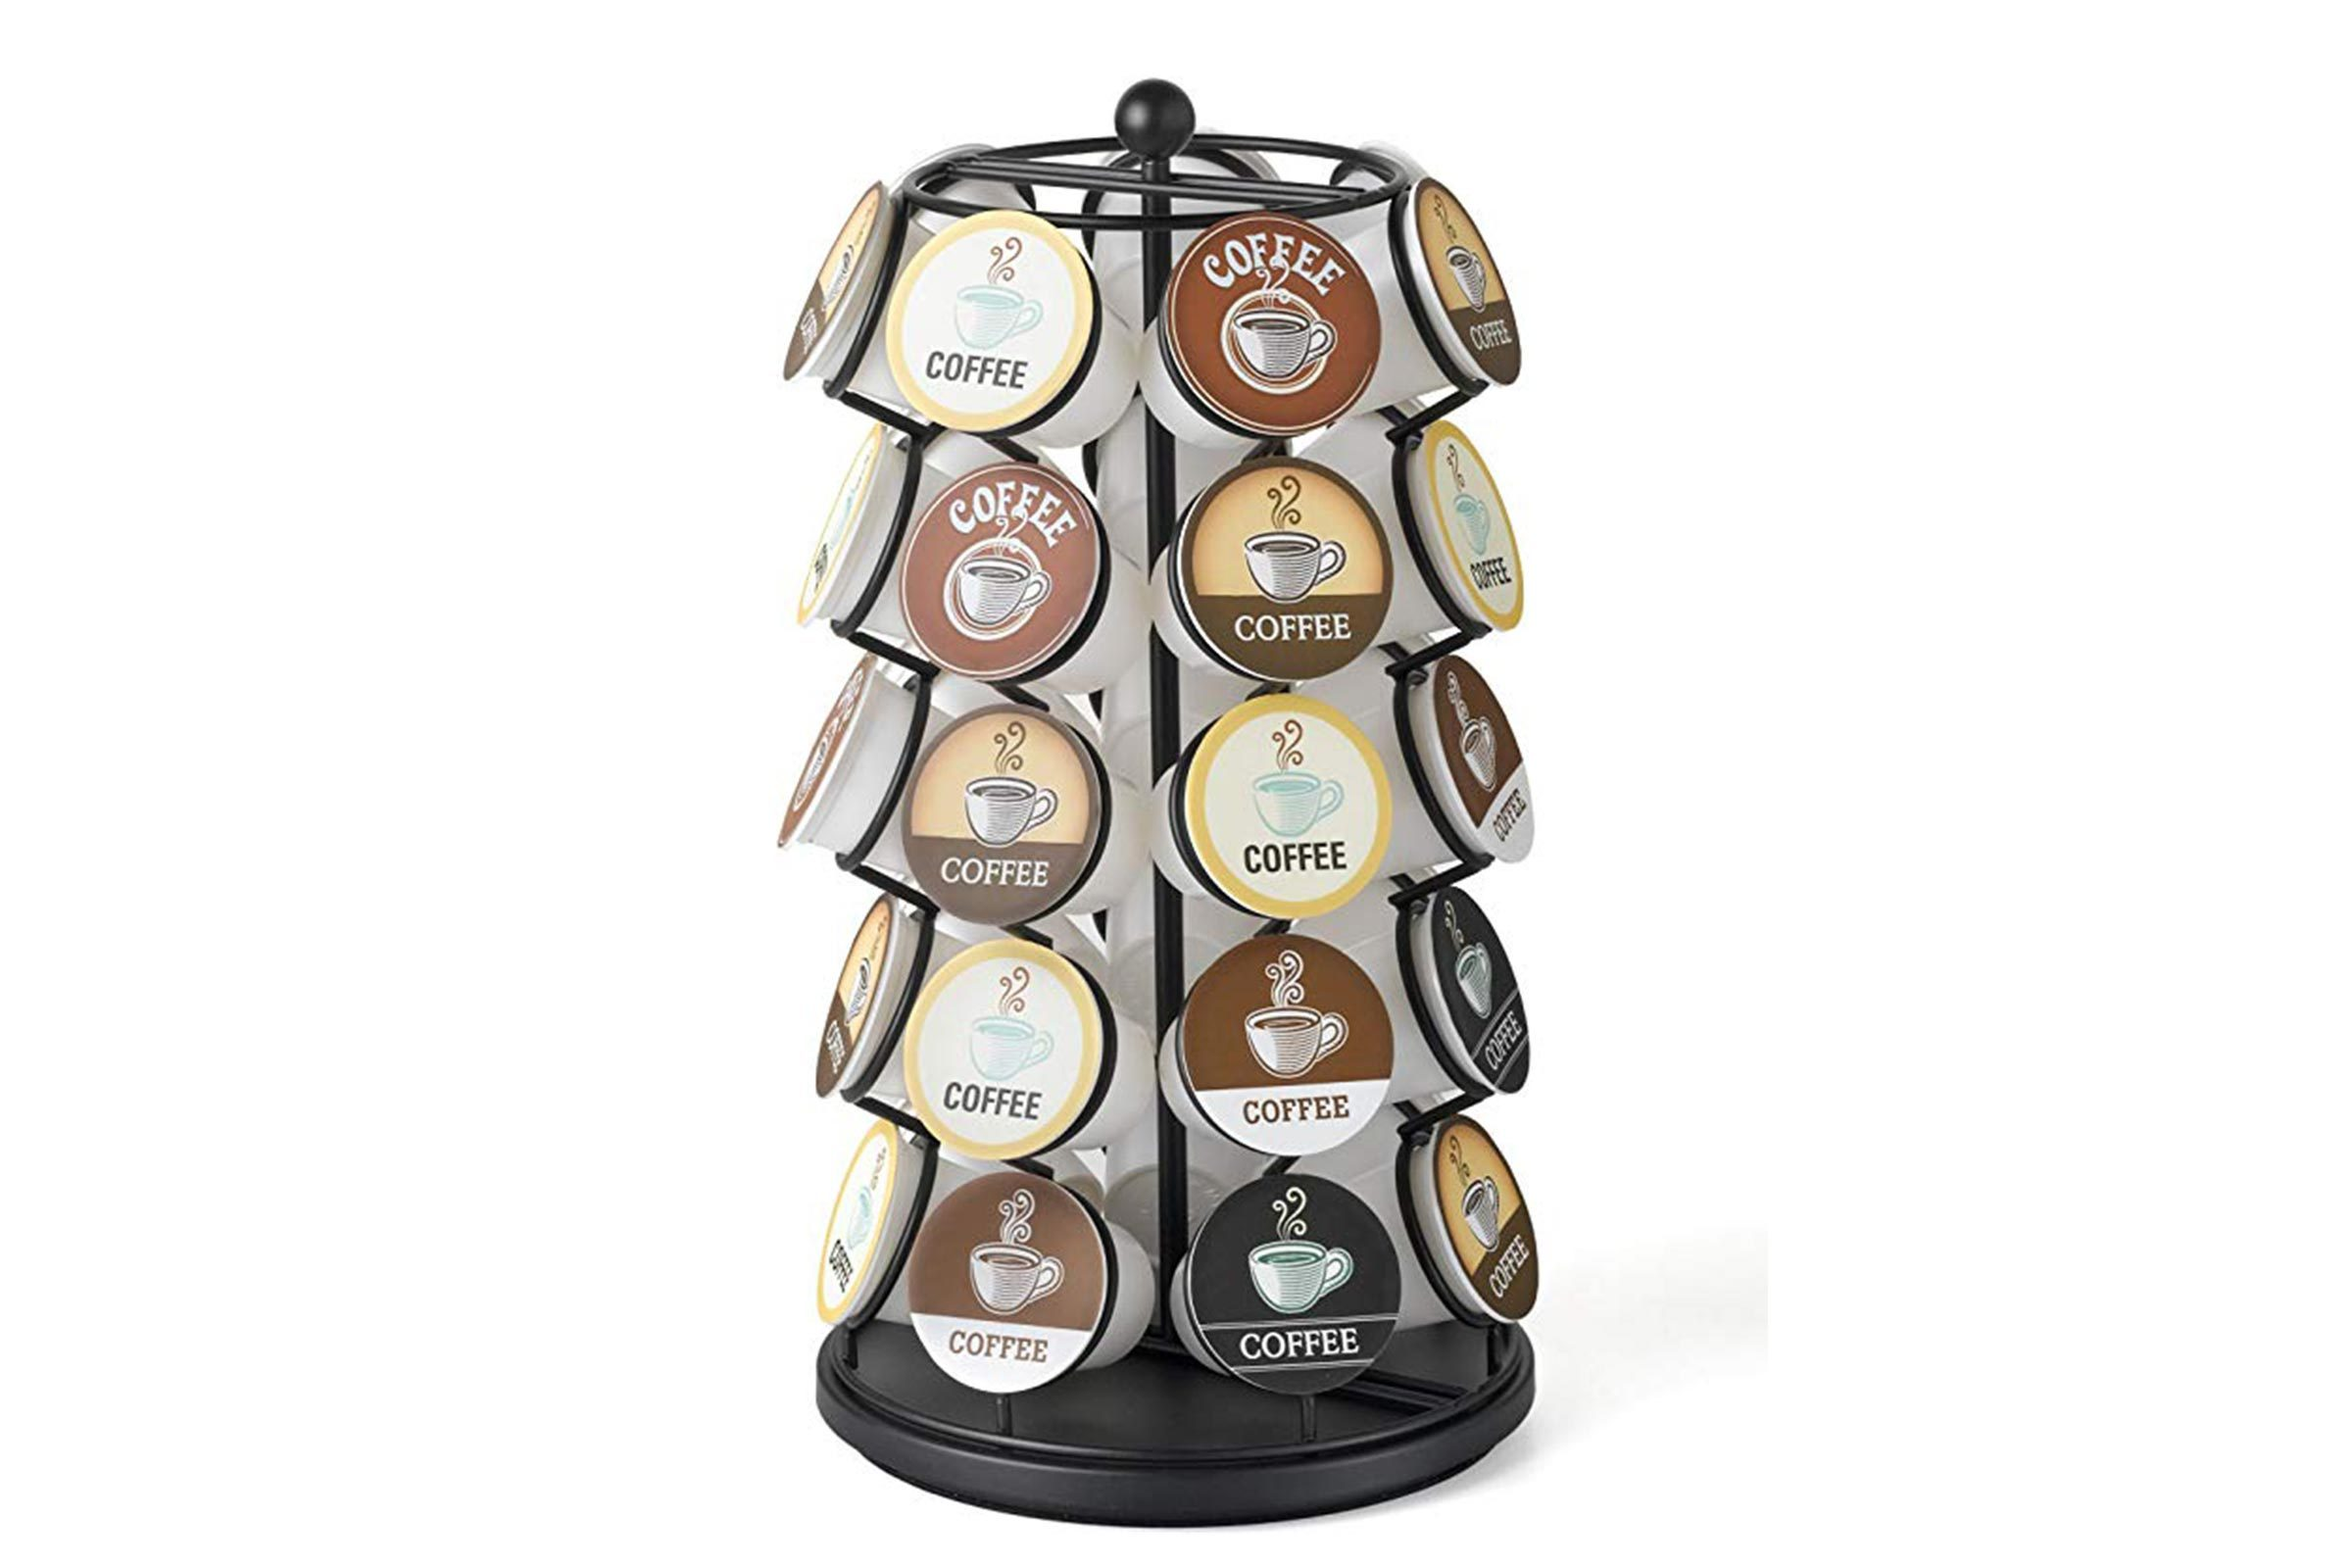 1_A-k-cup-carousel-to-help-you-see-your-stash